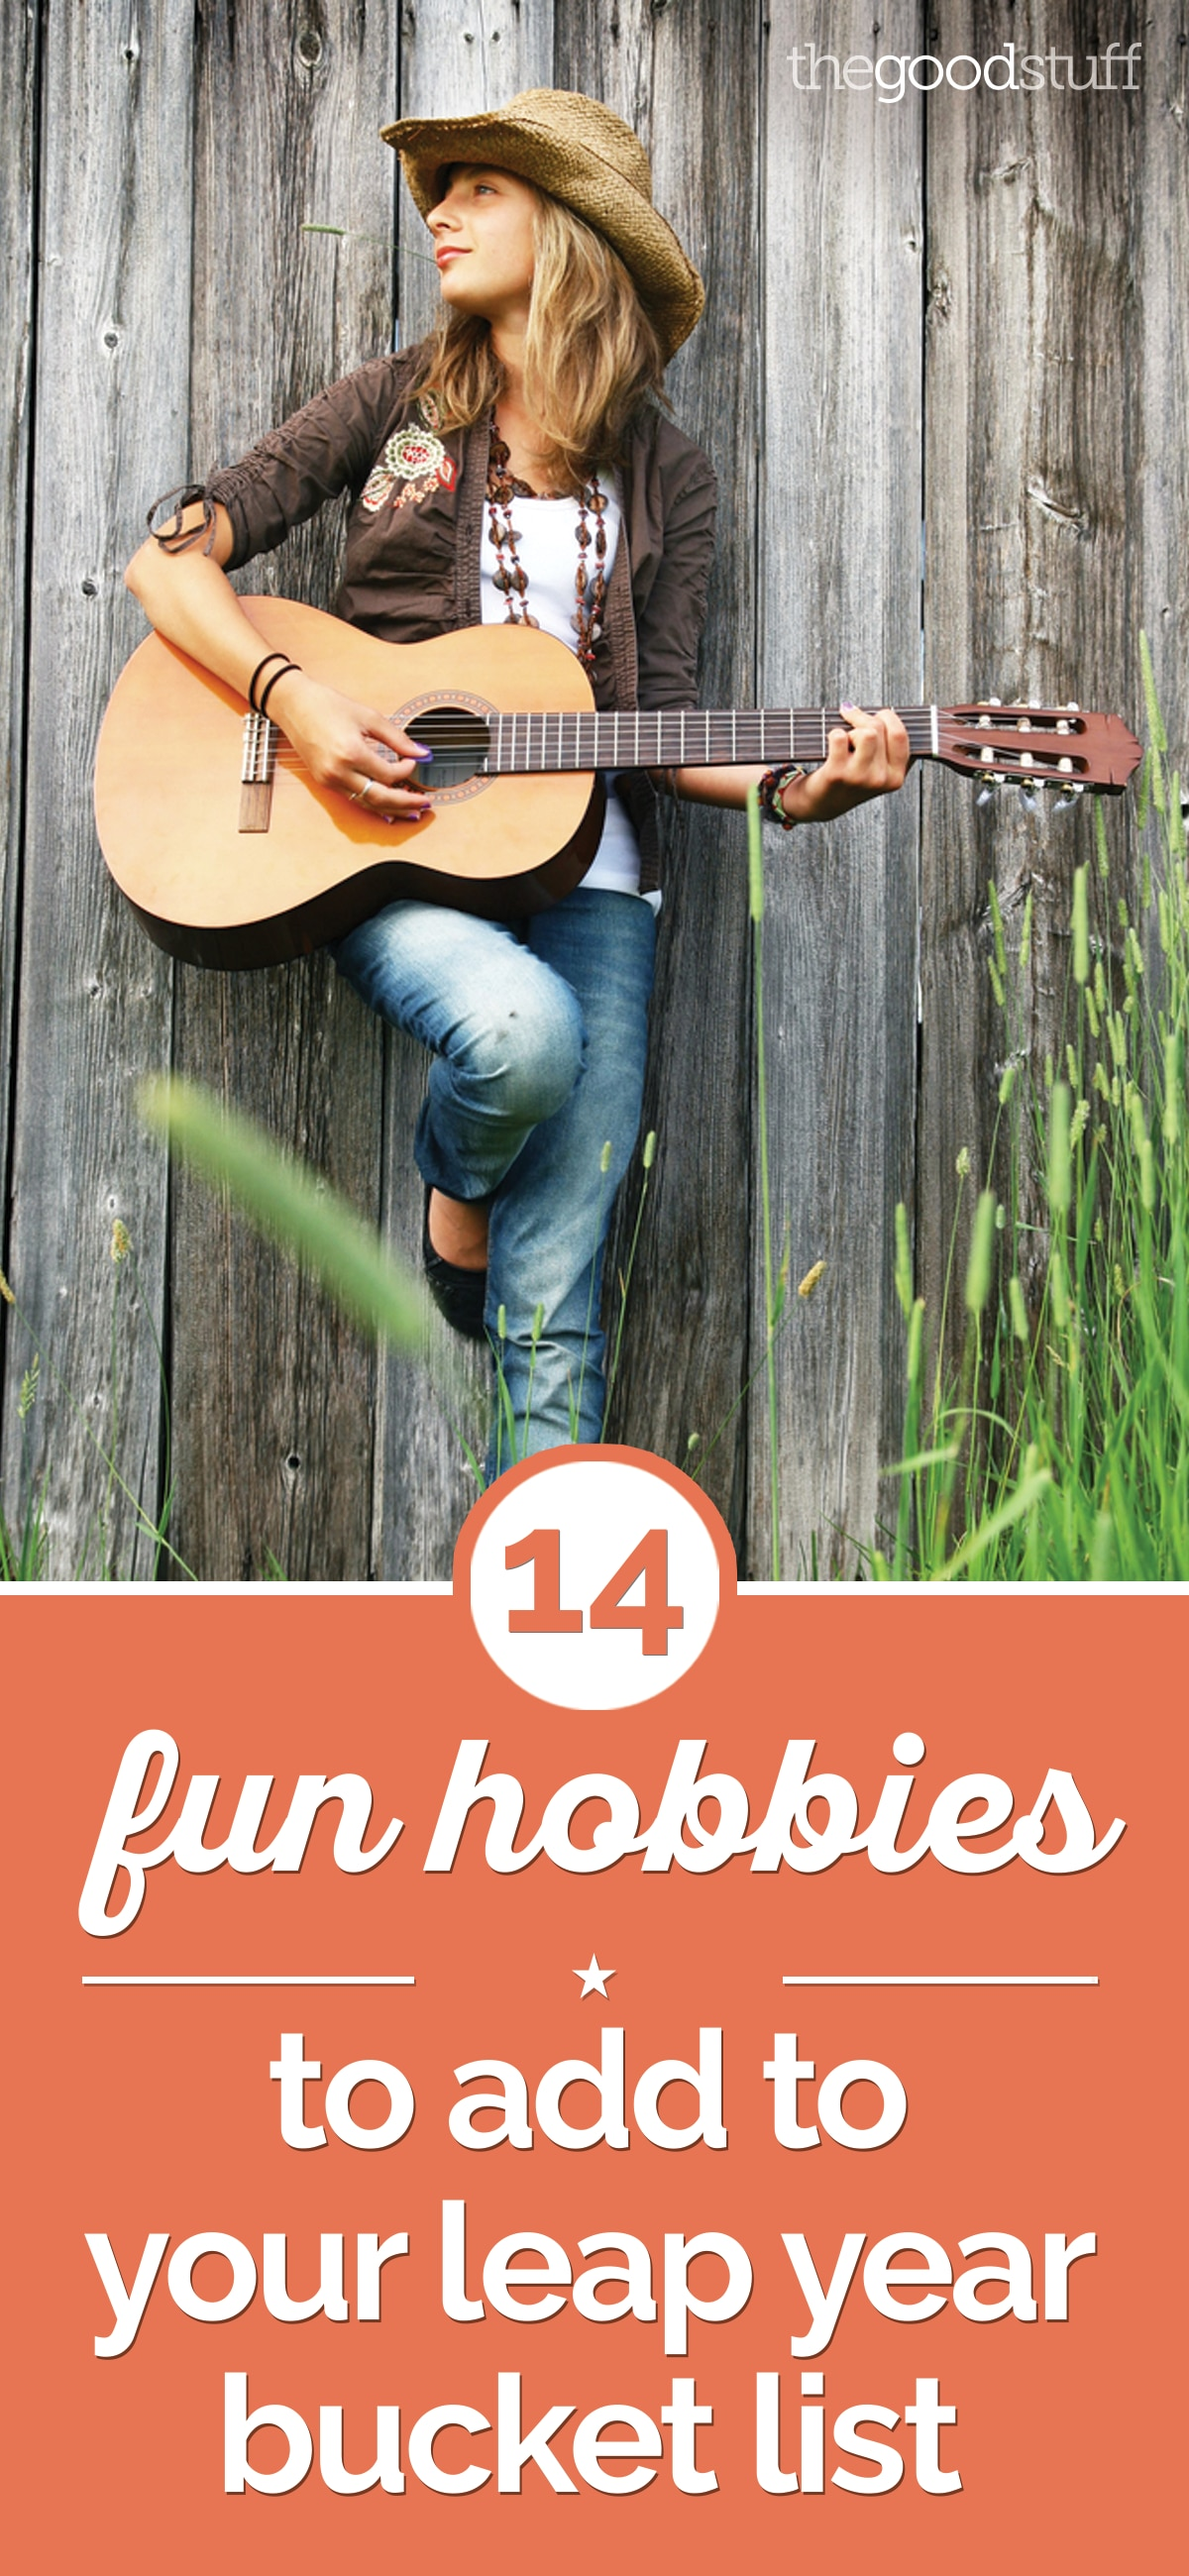 14 fun hobbies to add to your leap year bucket list thegoodstuff 14 fun hobbies to add to your leap year bucket list thegoodstuff